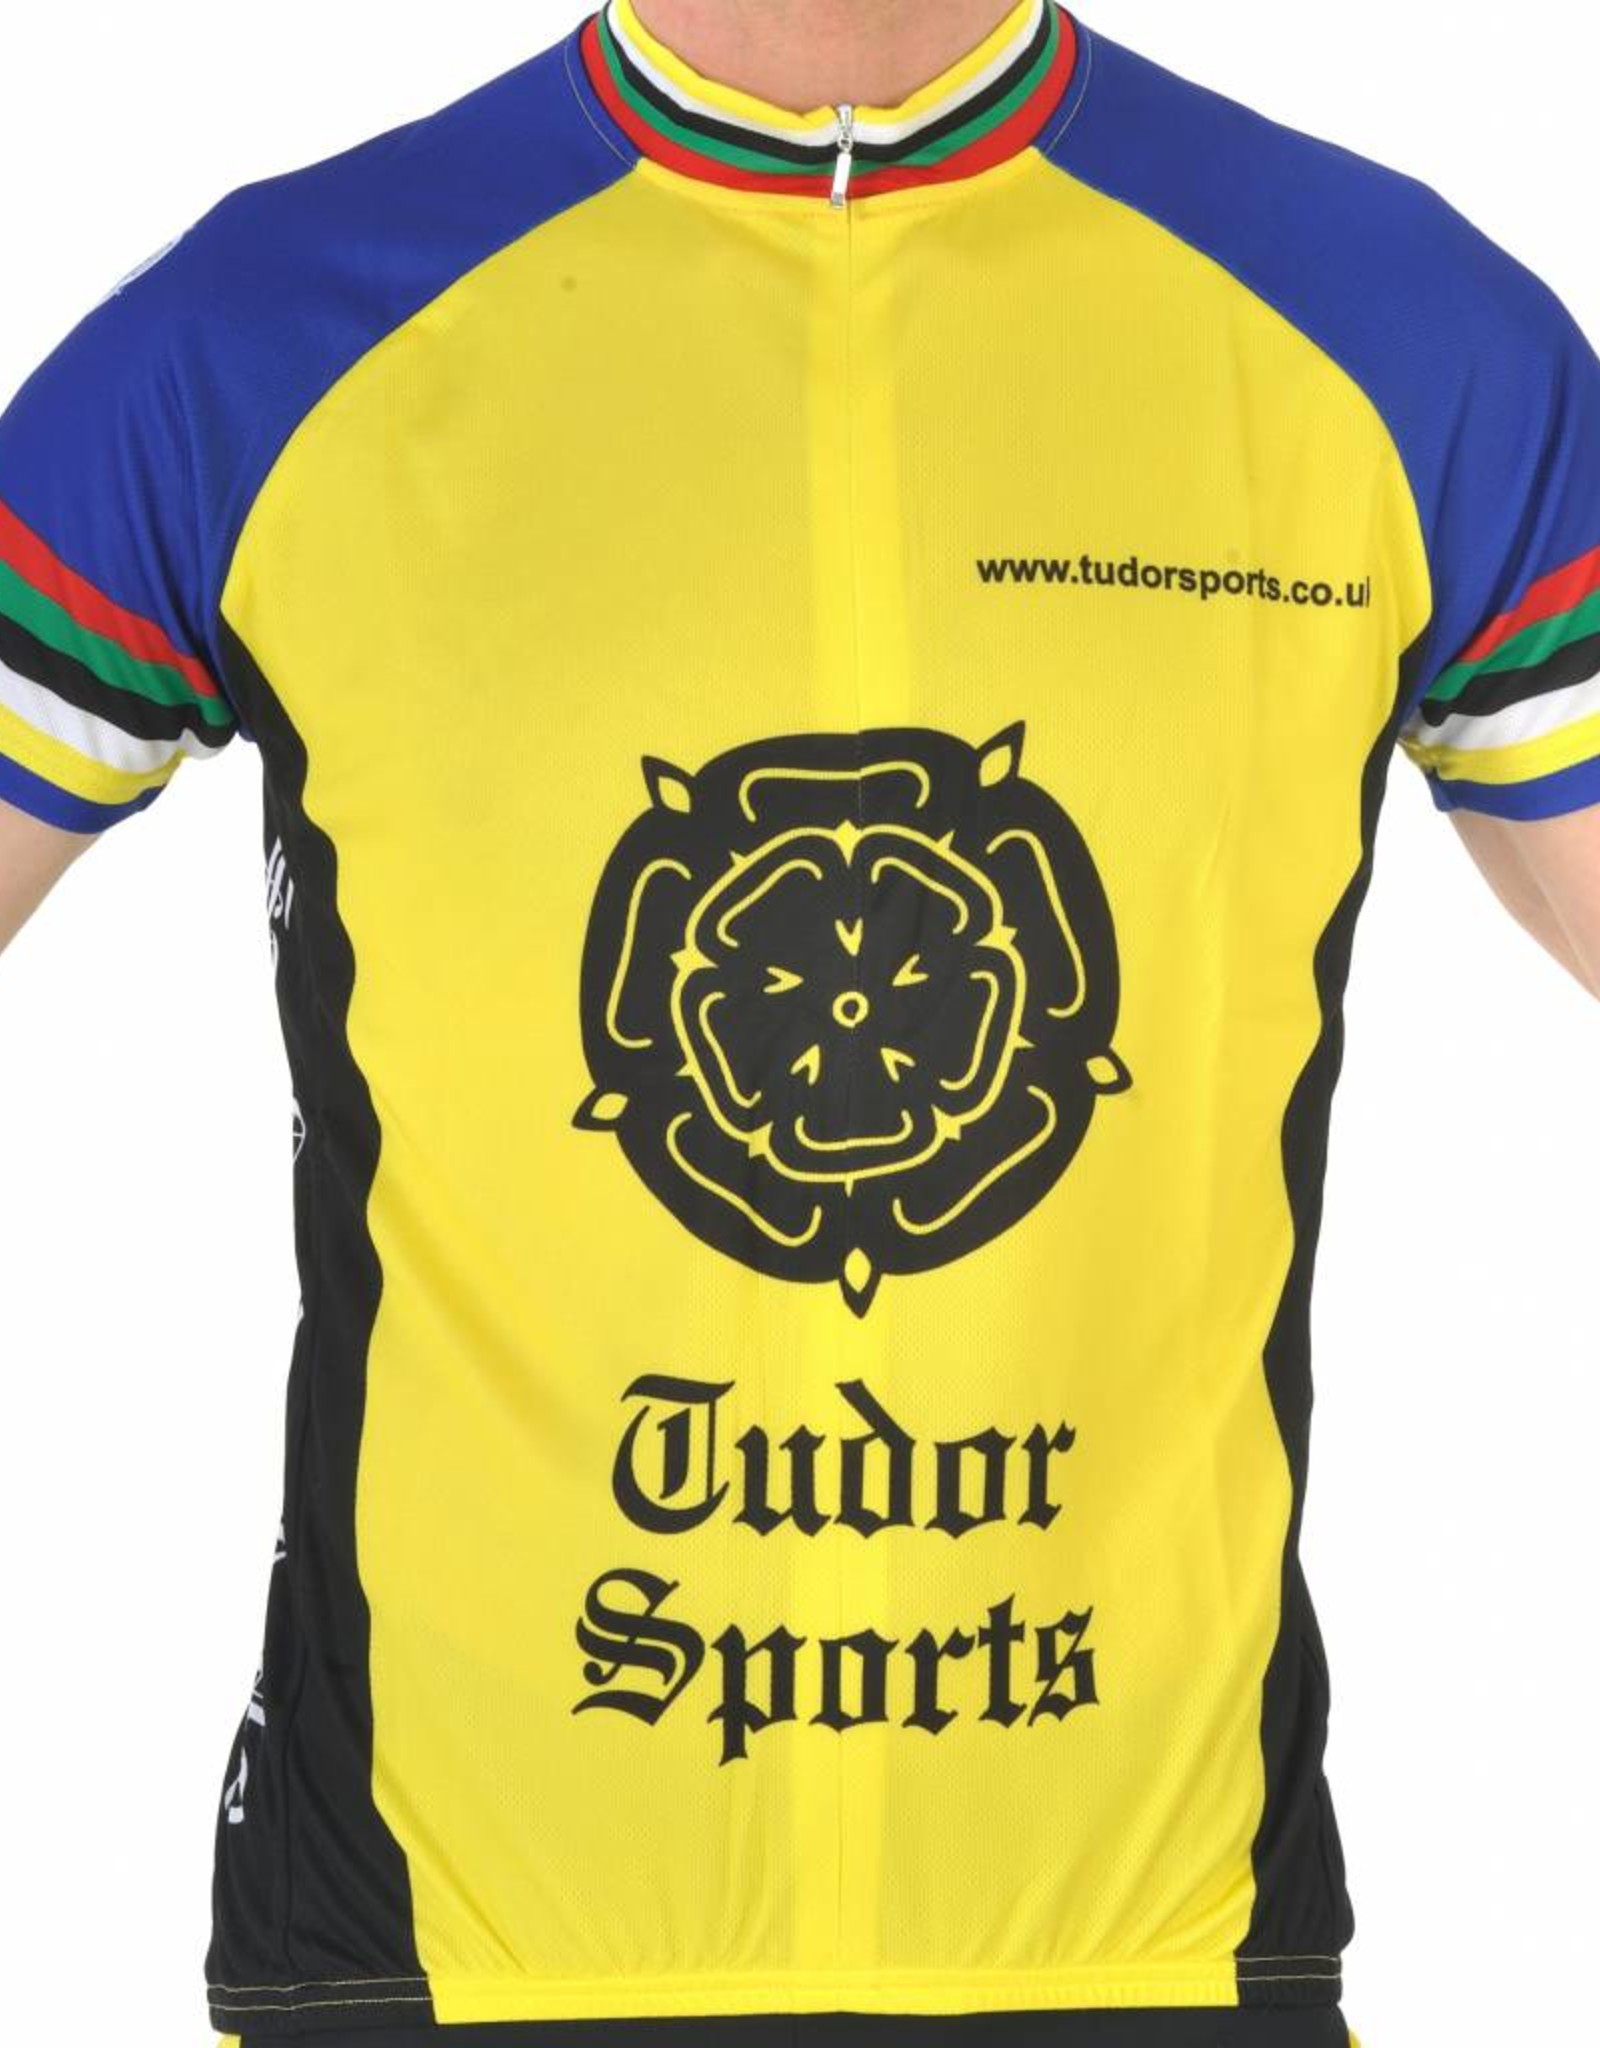 Tudor TS550 Team Tudor Short Sleeved Road Jersey